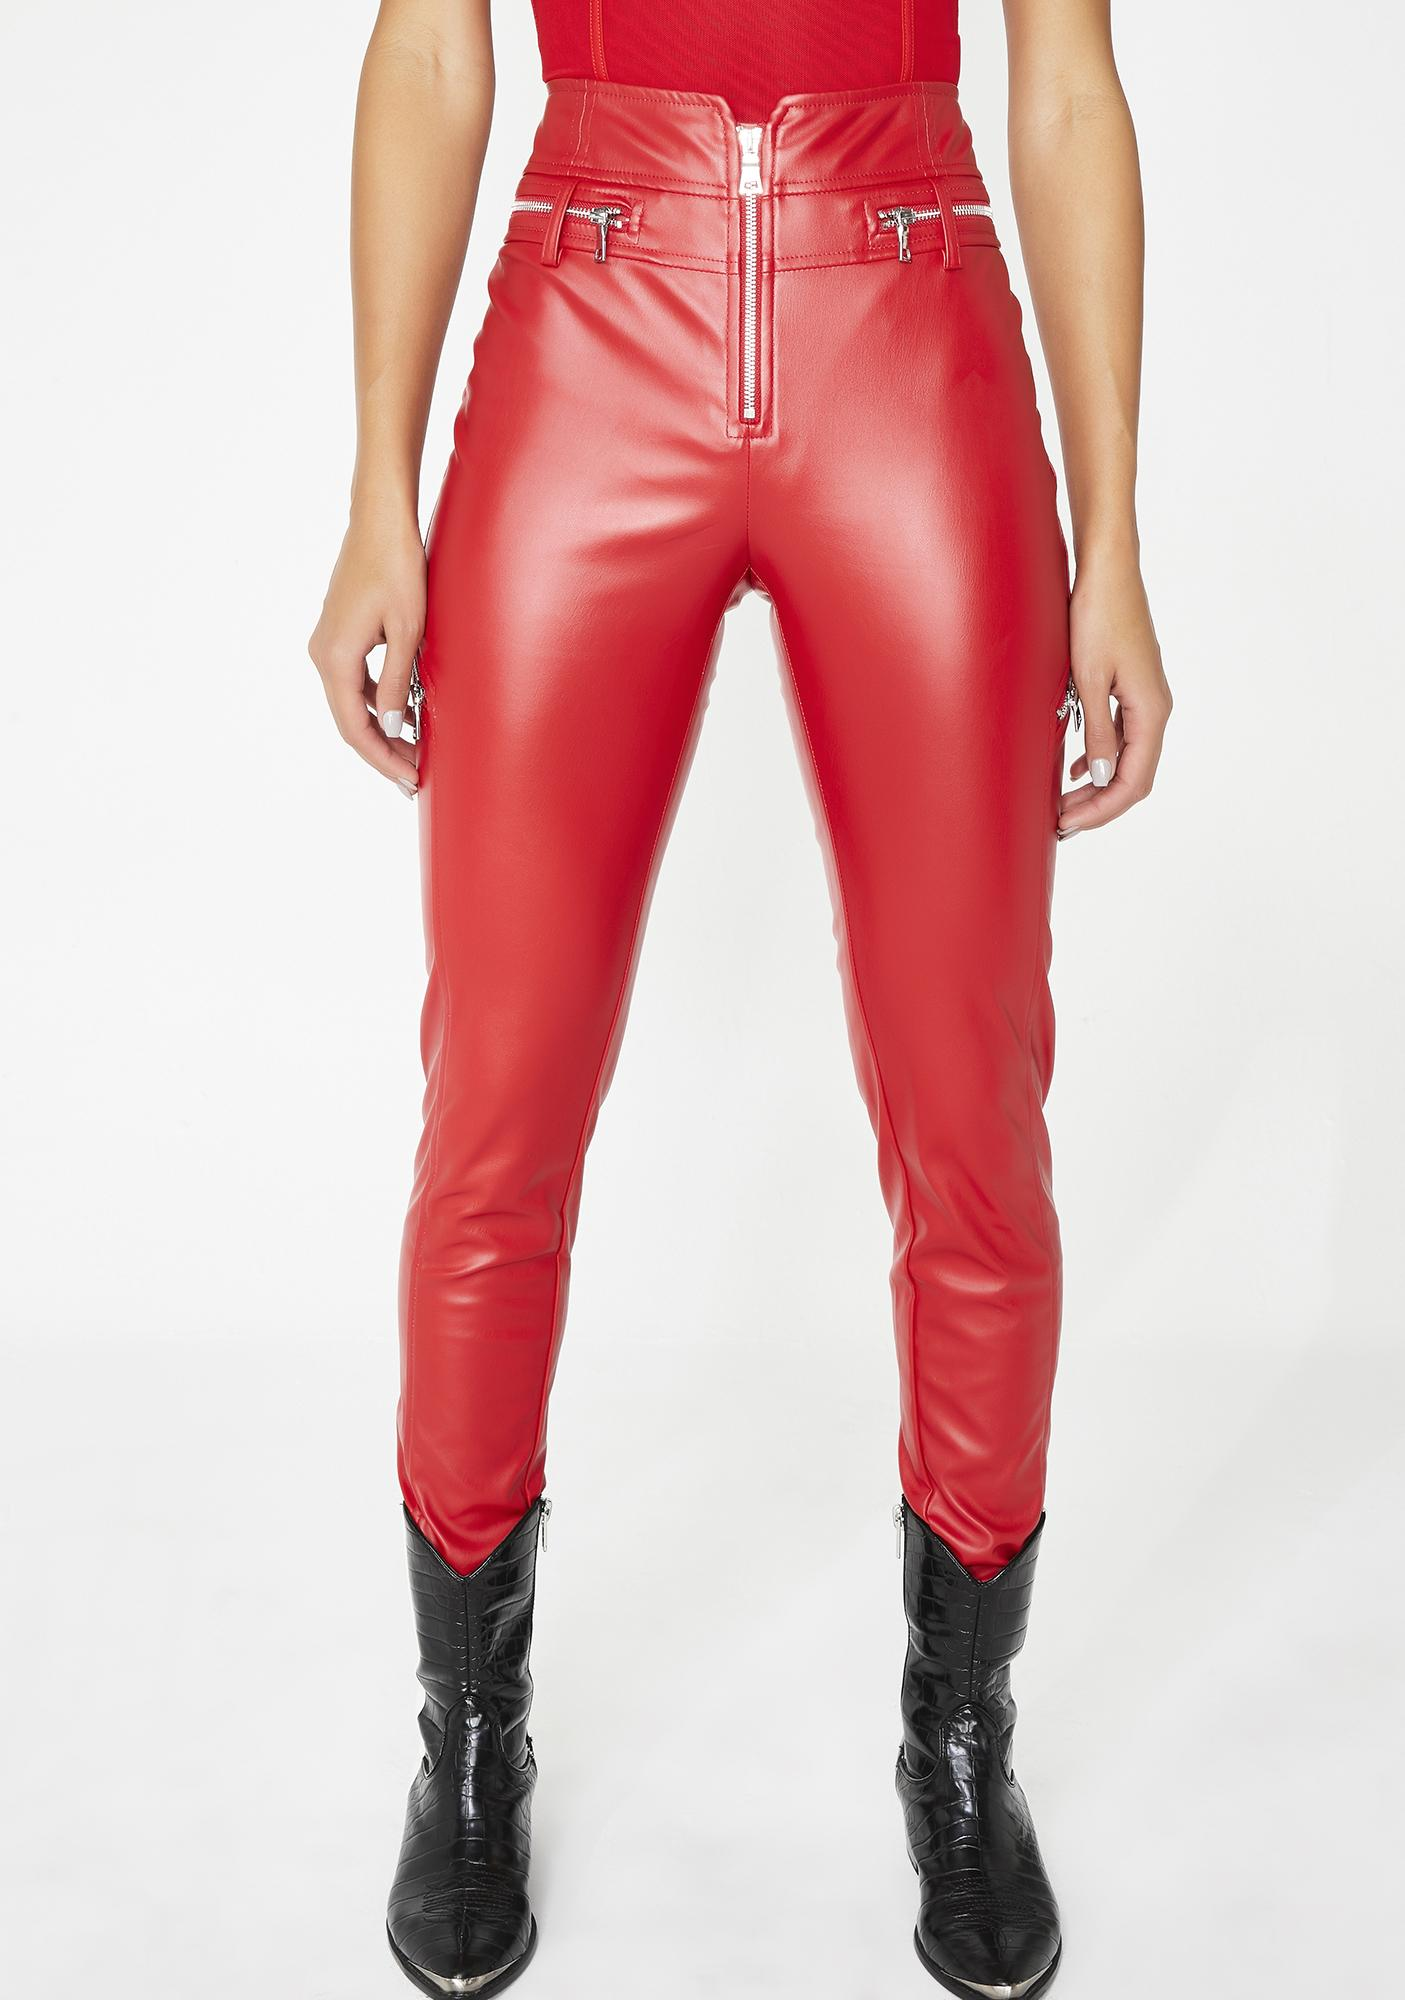 Spicy Lennon Pants by Tiger Mist